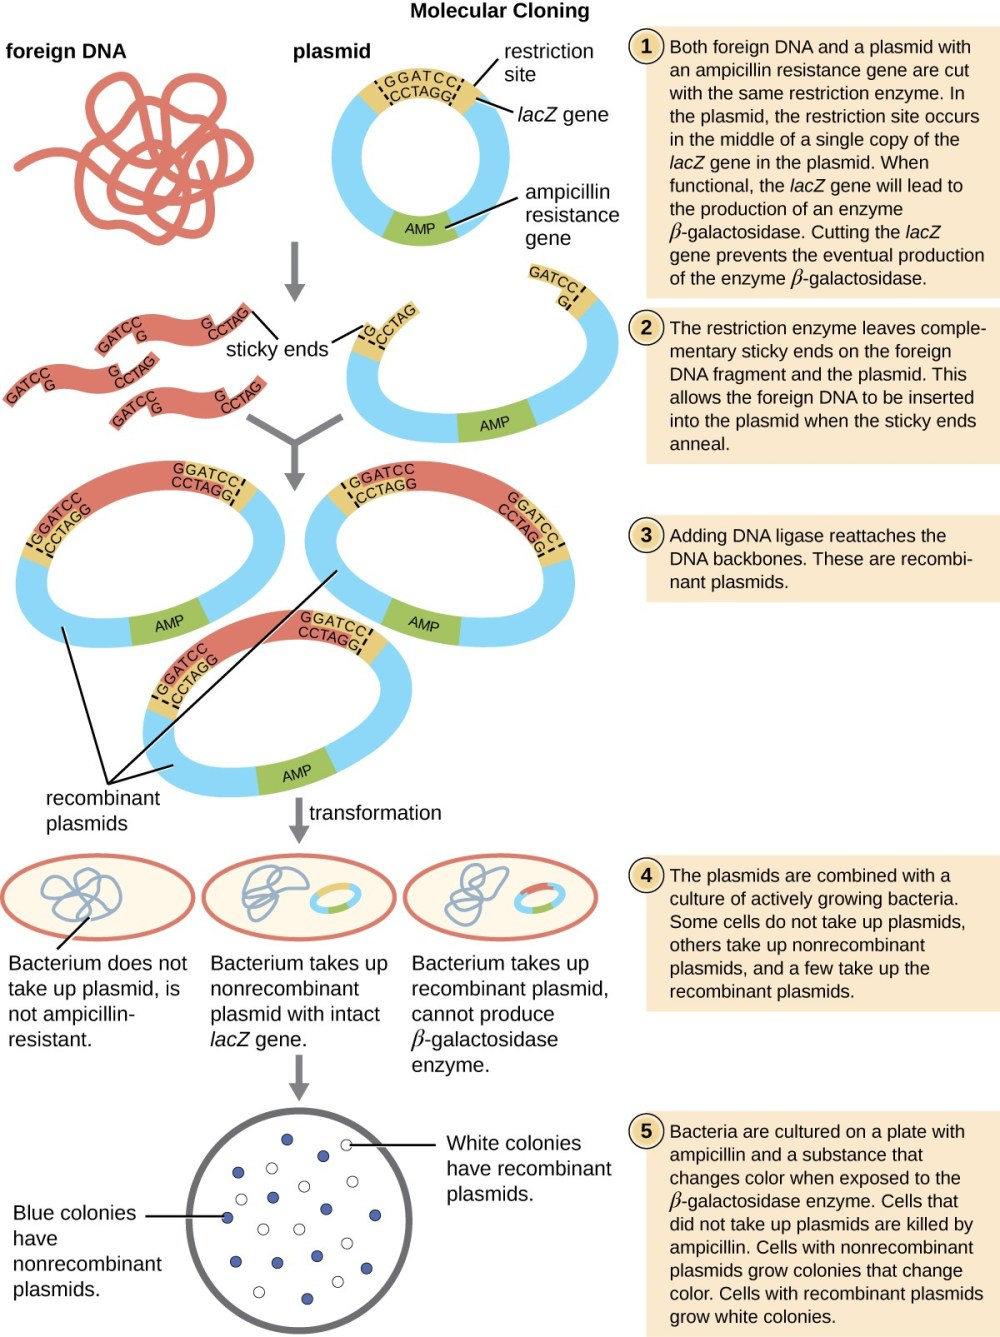 medium resolution of a diagram explaining molecular cloning both foreign dna and a plasmid are cut with the